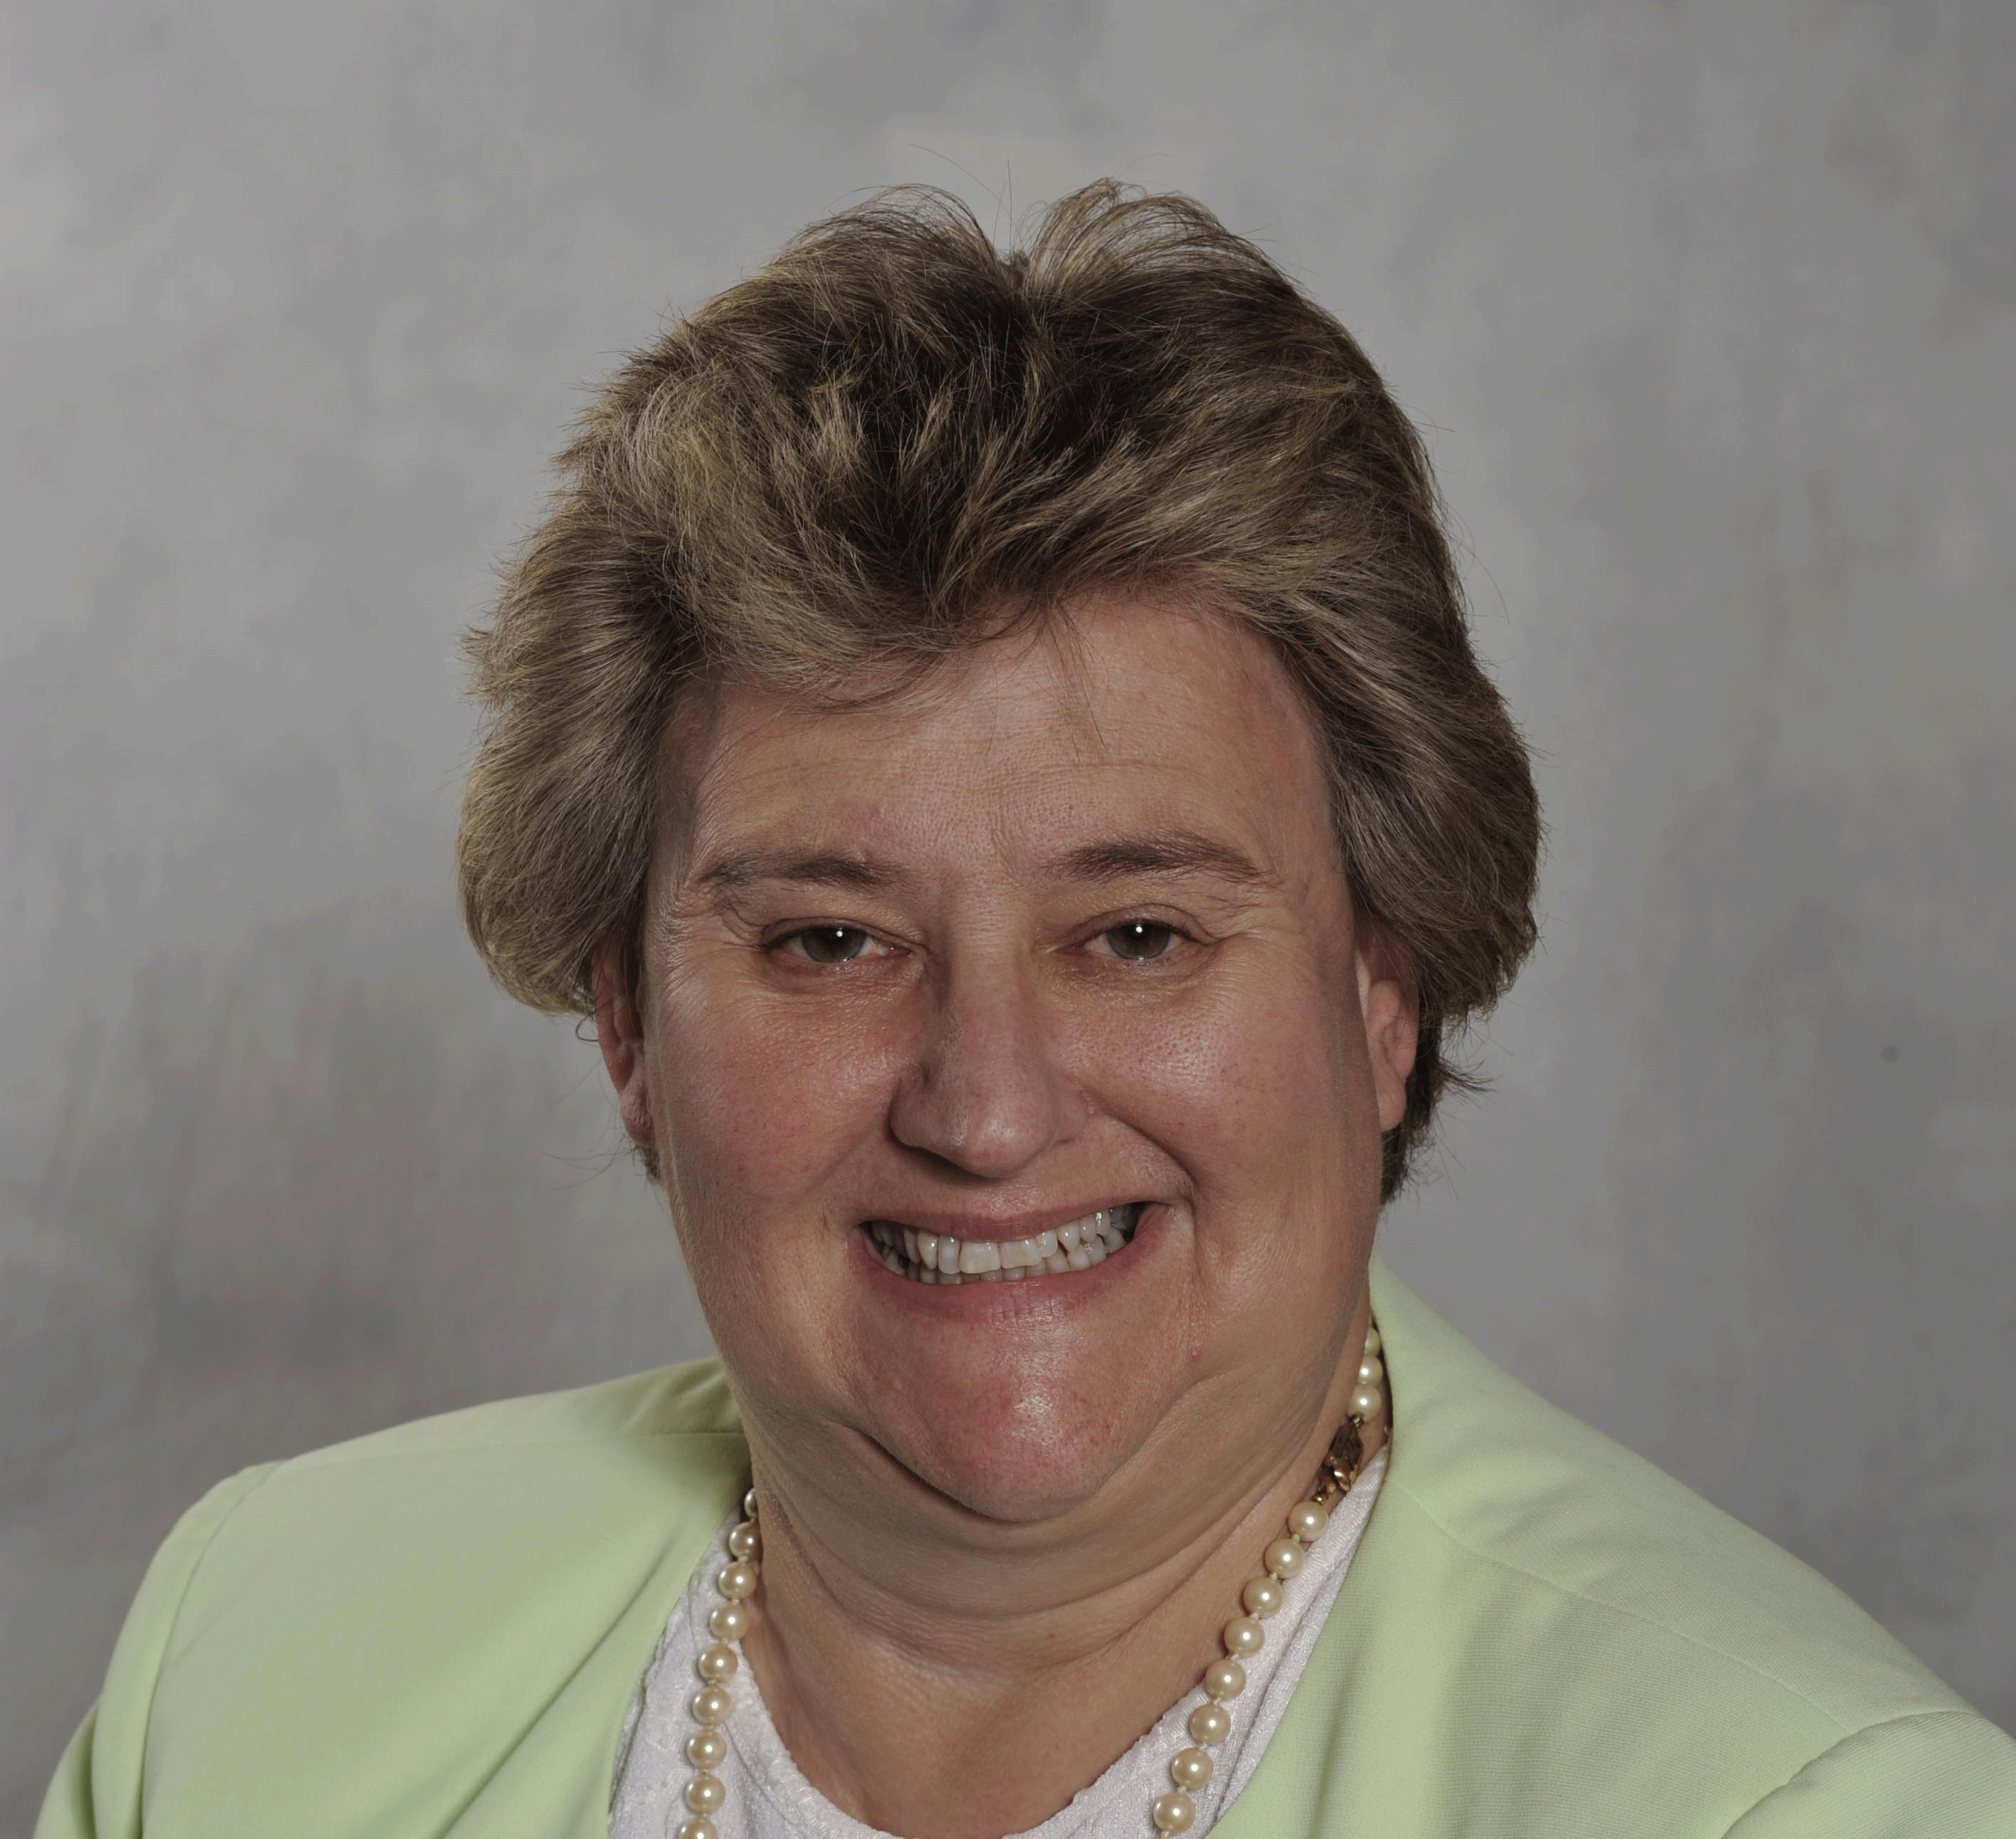 Portrait of Heather Wheeler, foreign office minister.